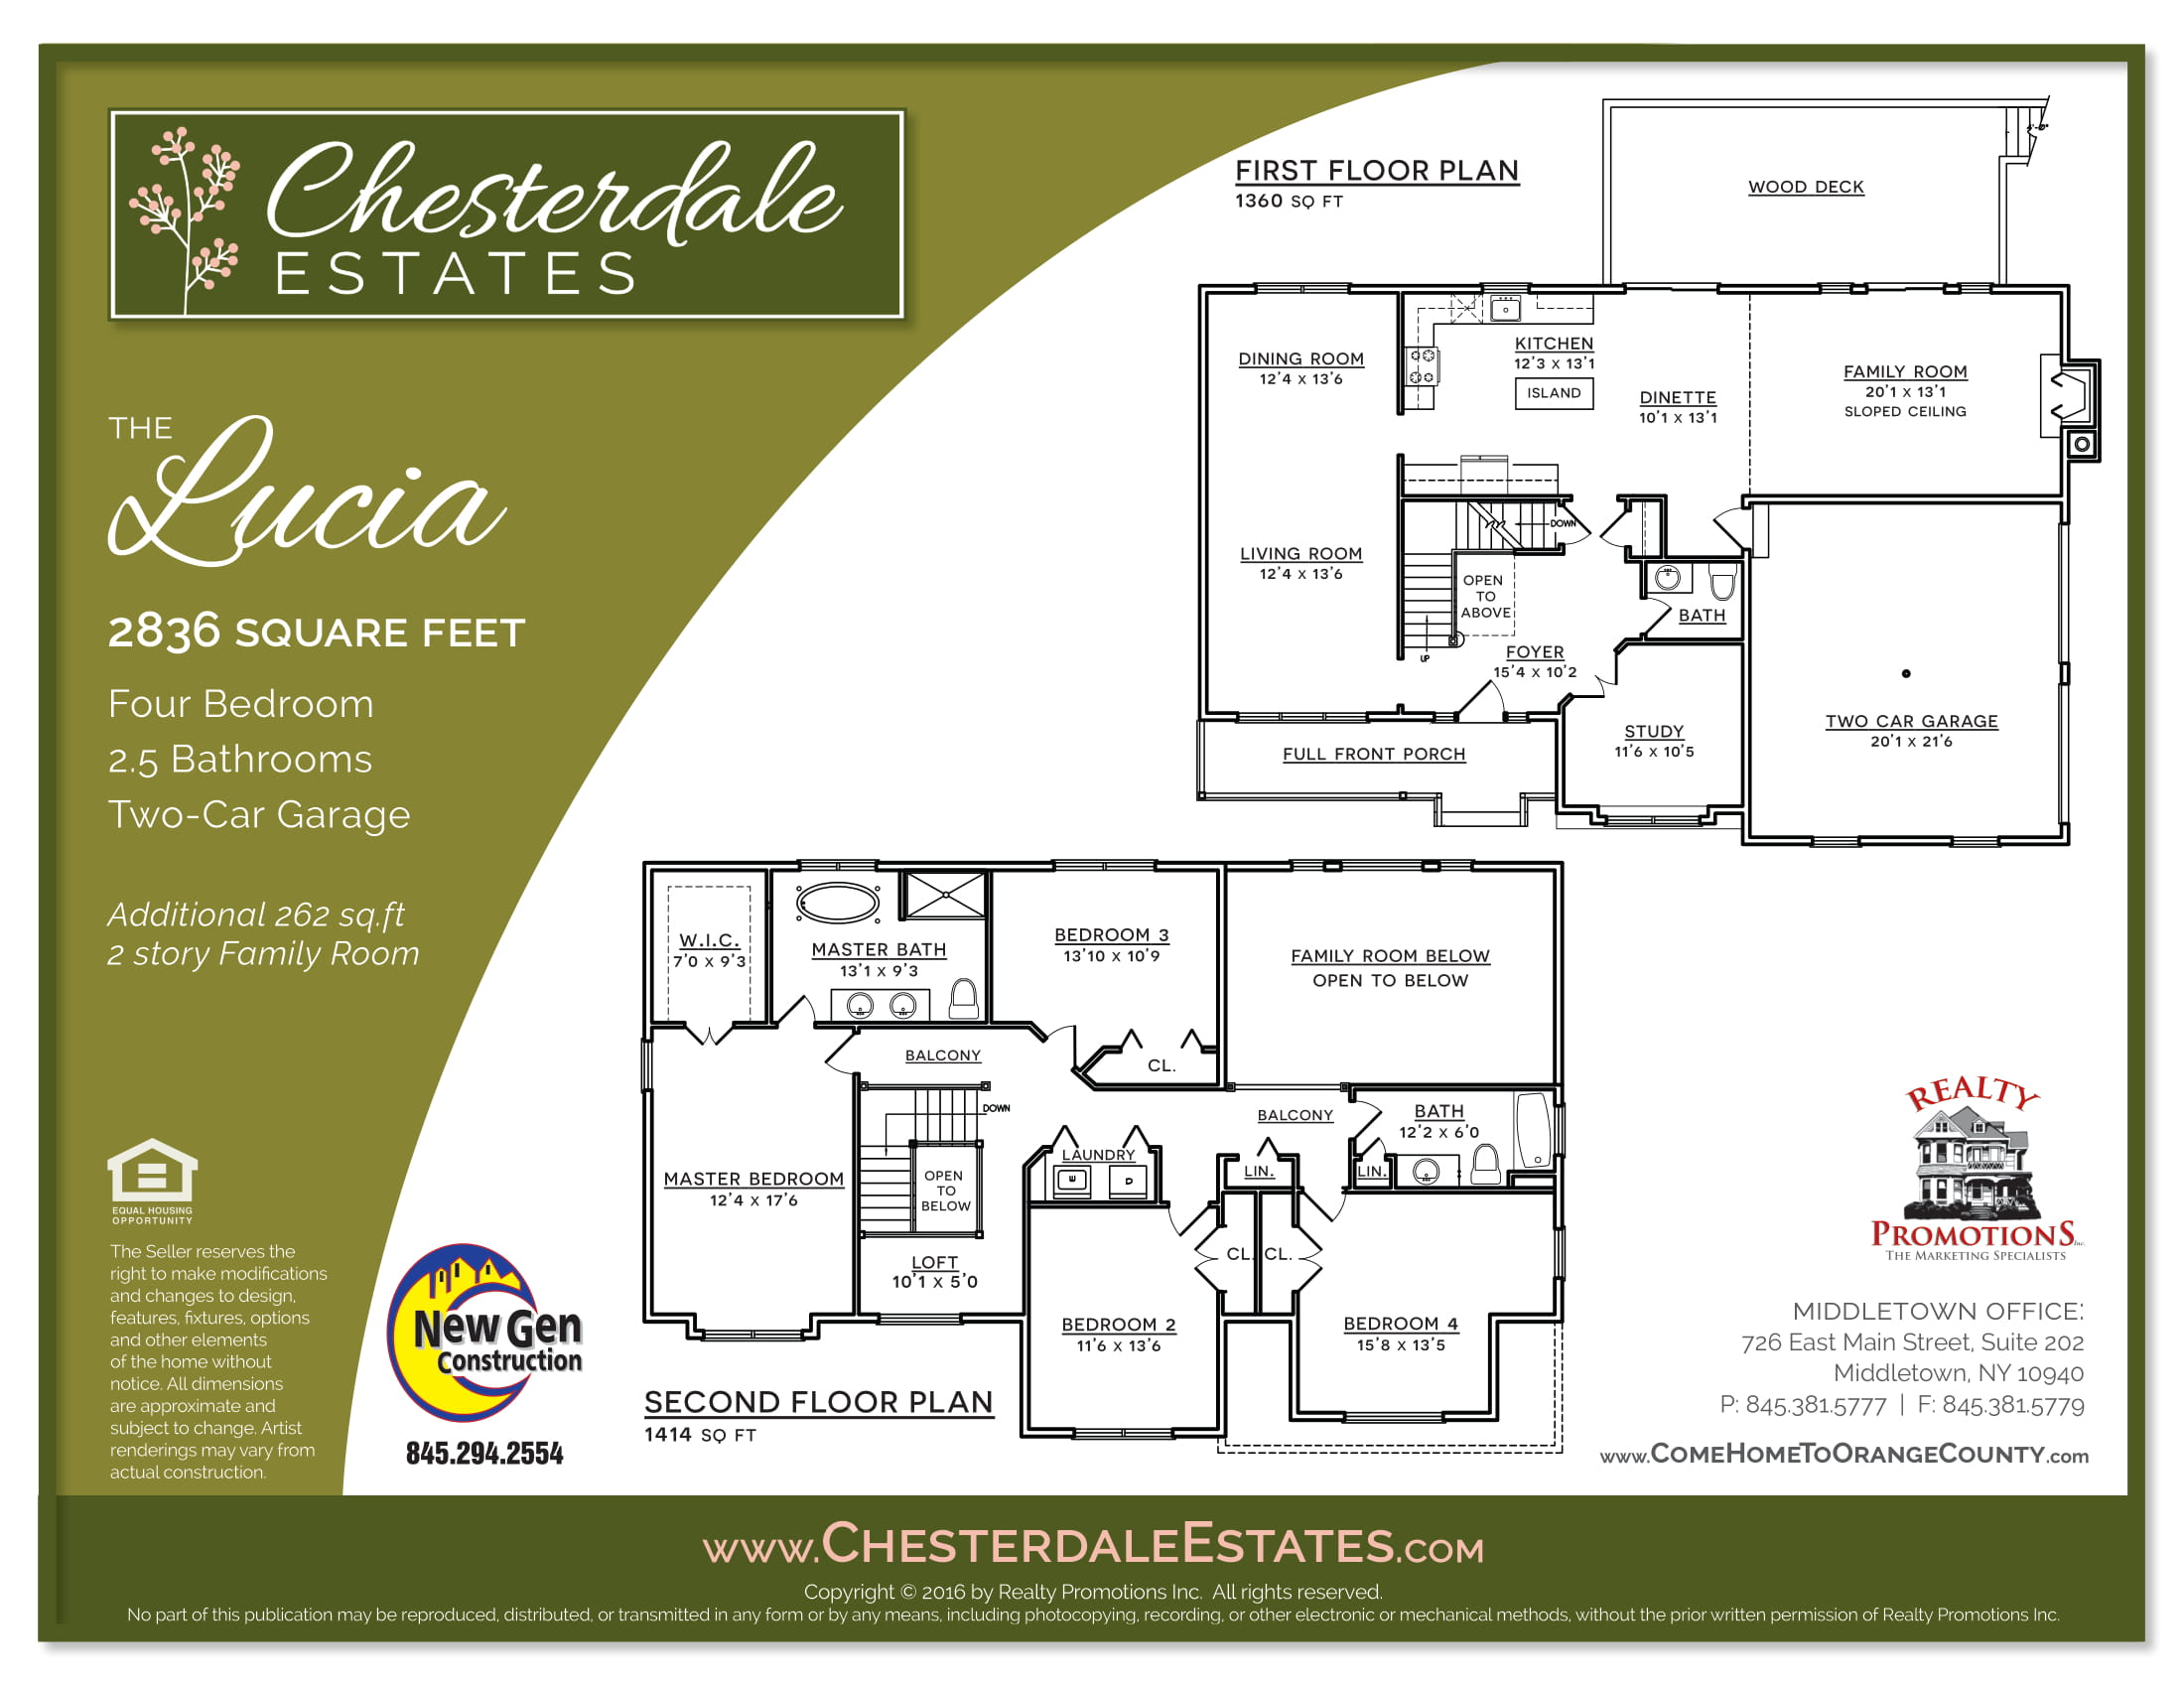 Christopher Ogden Middletown Ny Real Estate Thelucia Chesterdale 2